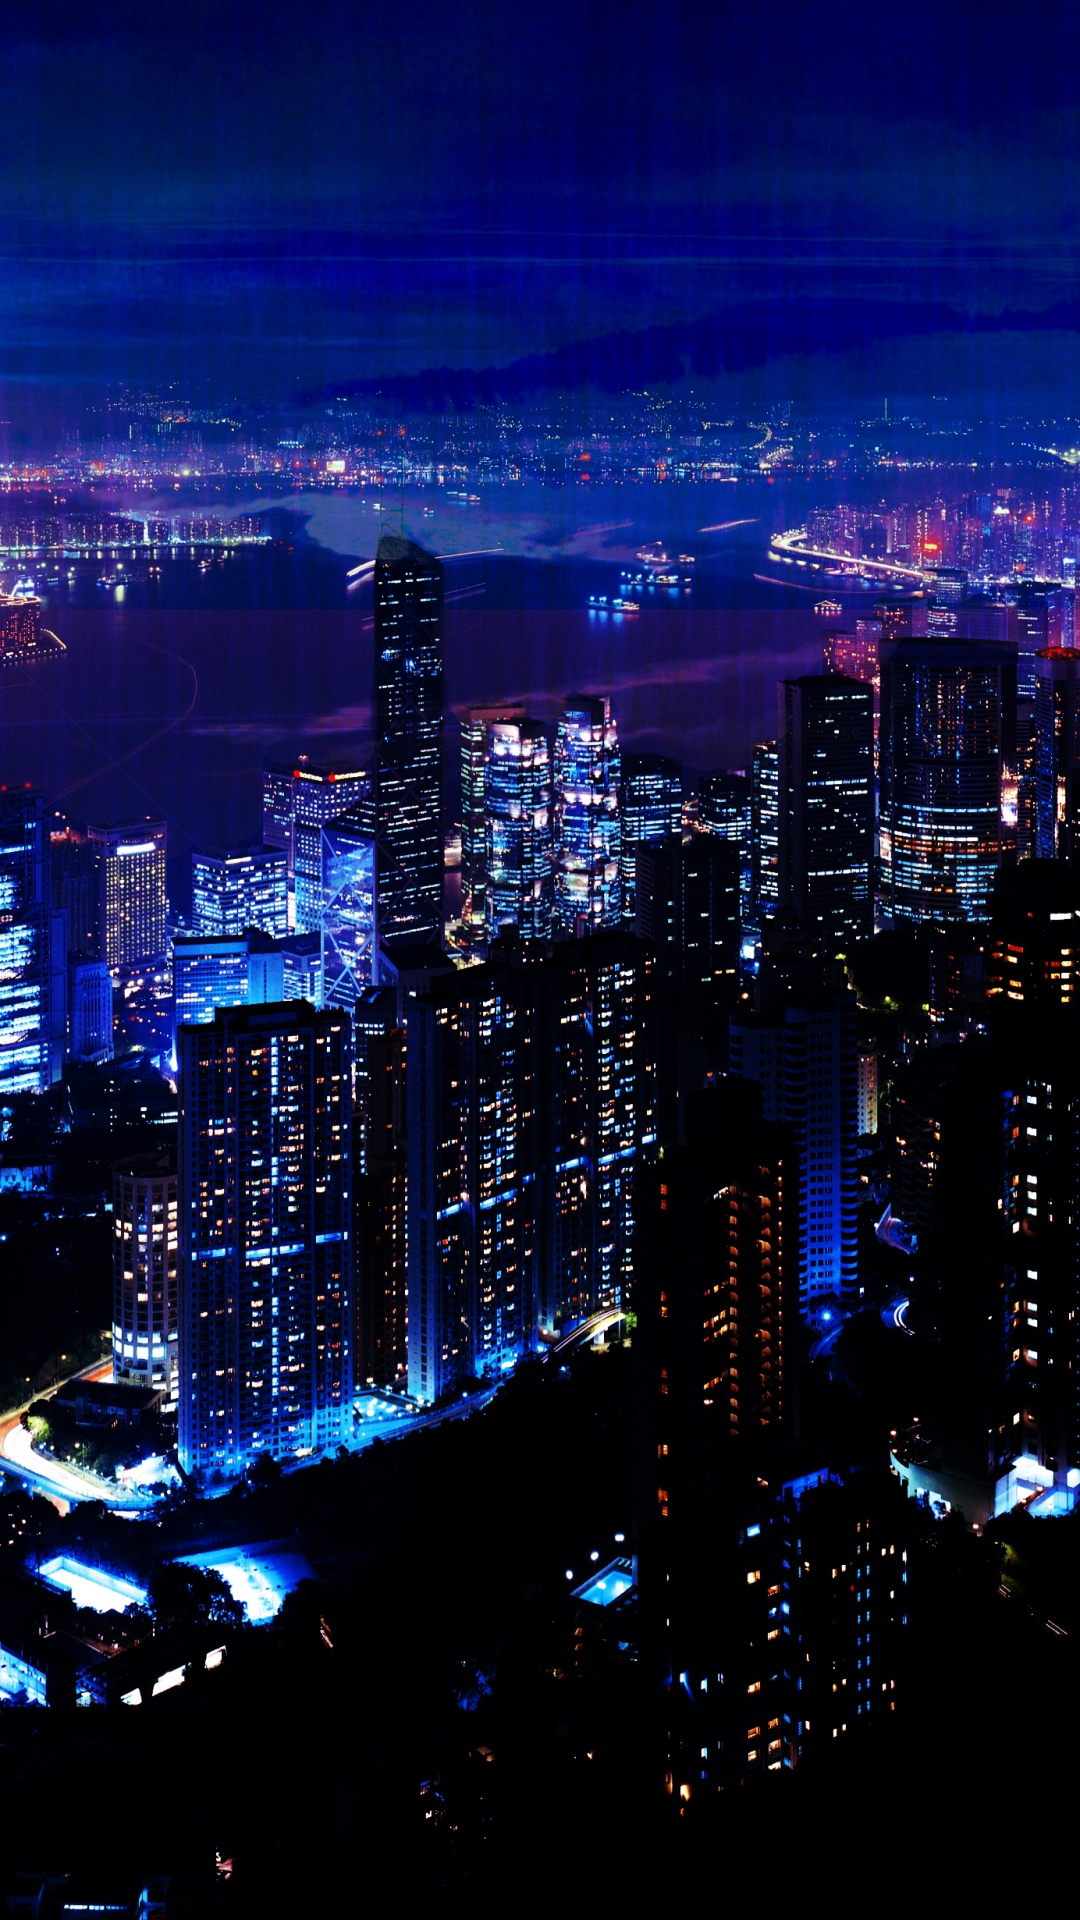 Night Wallpaper night city sky skyscrapers 79288 1080x1920 ...